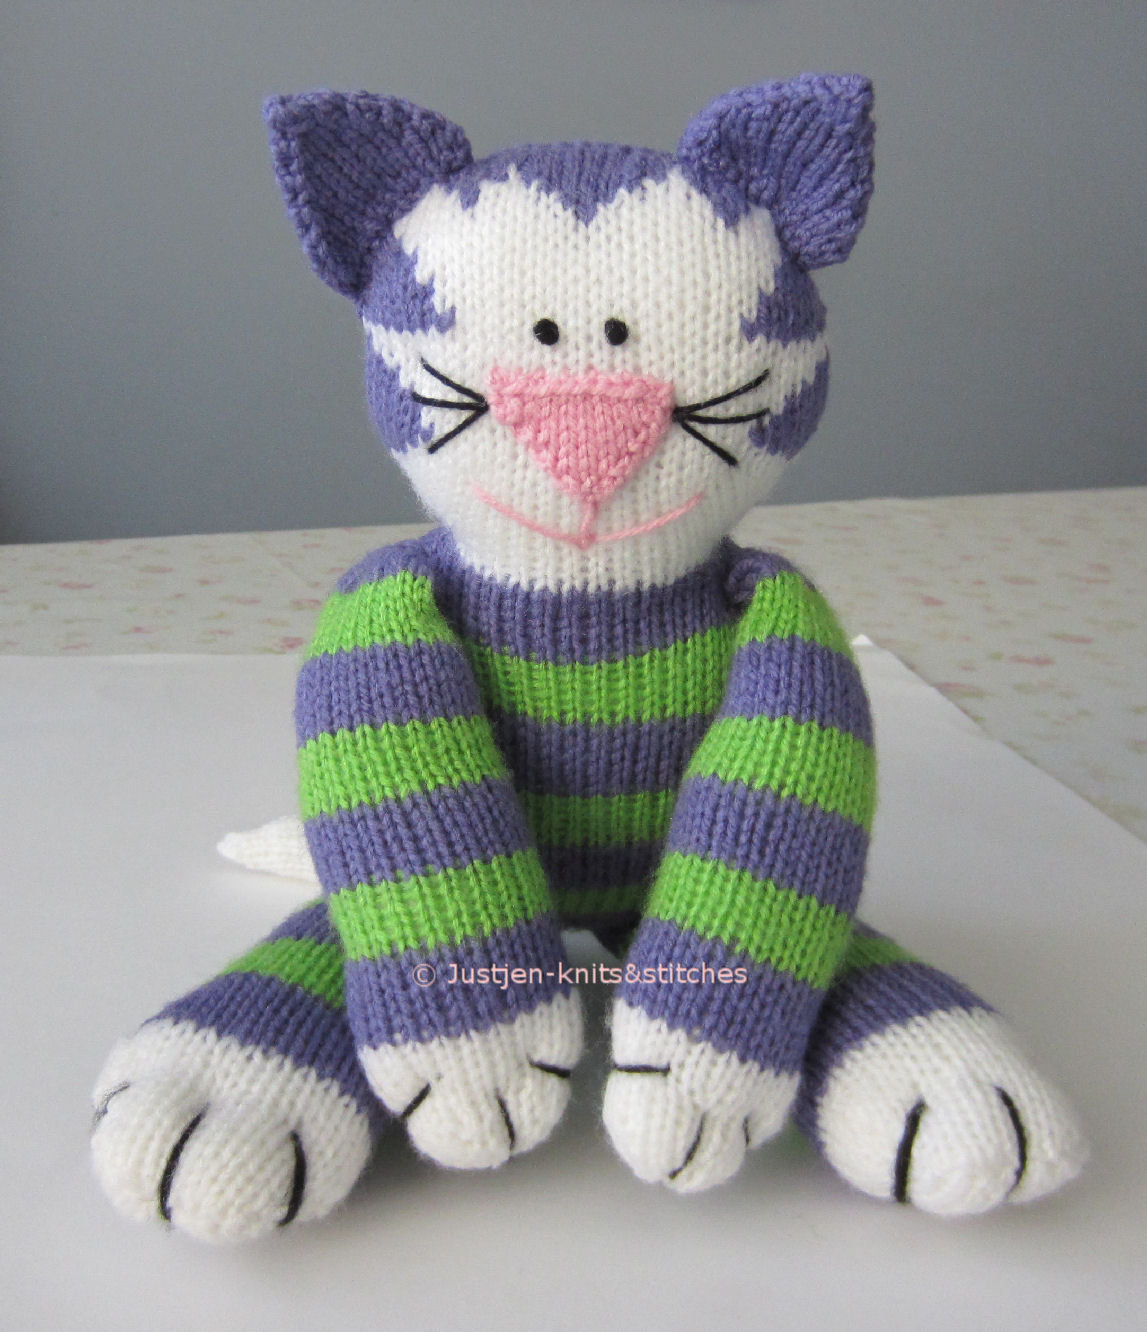 Justjen knitsstitches share kitty knitted cat pattern share kitty knitted cat pattern bankloansurffo Image collections